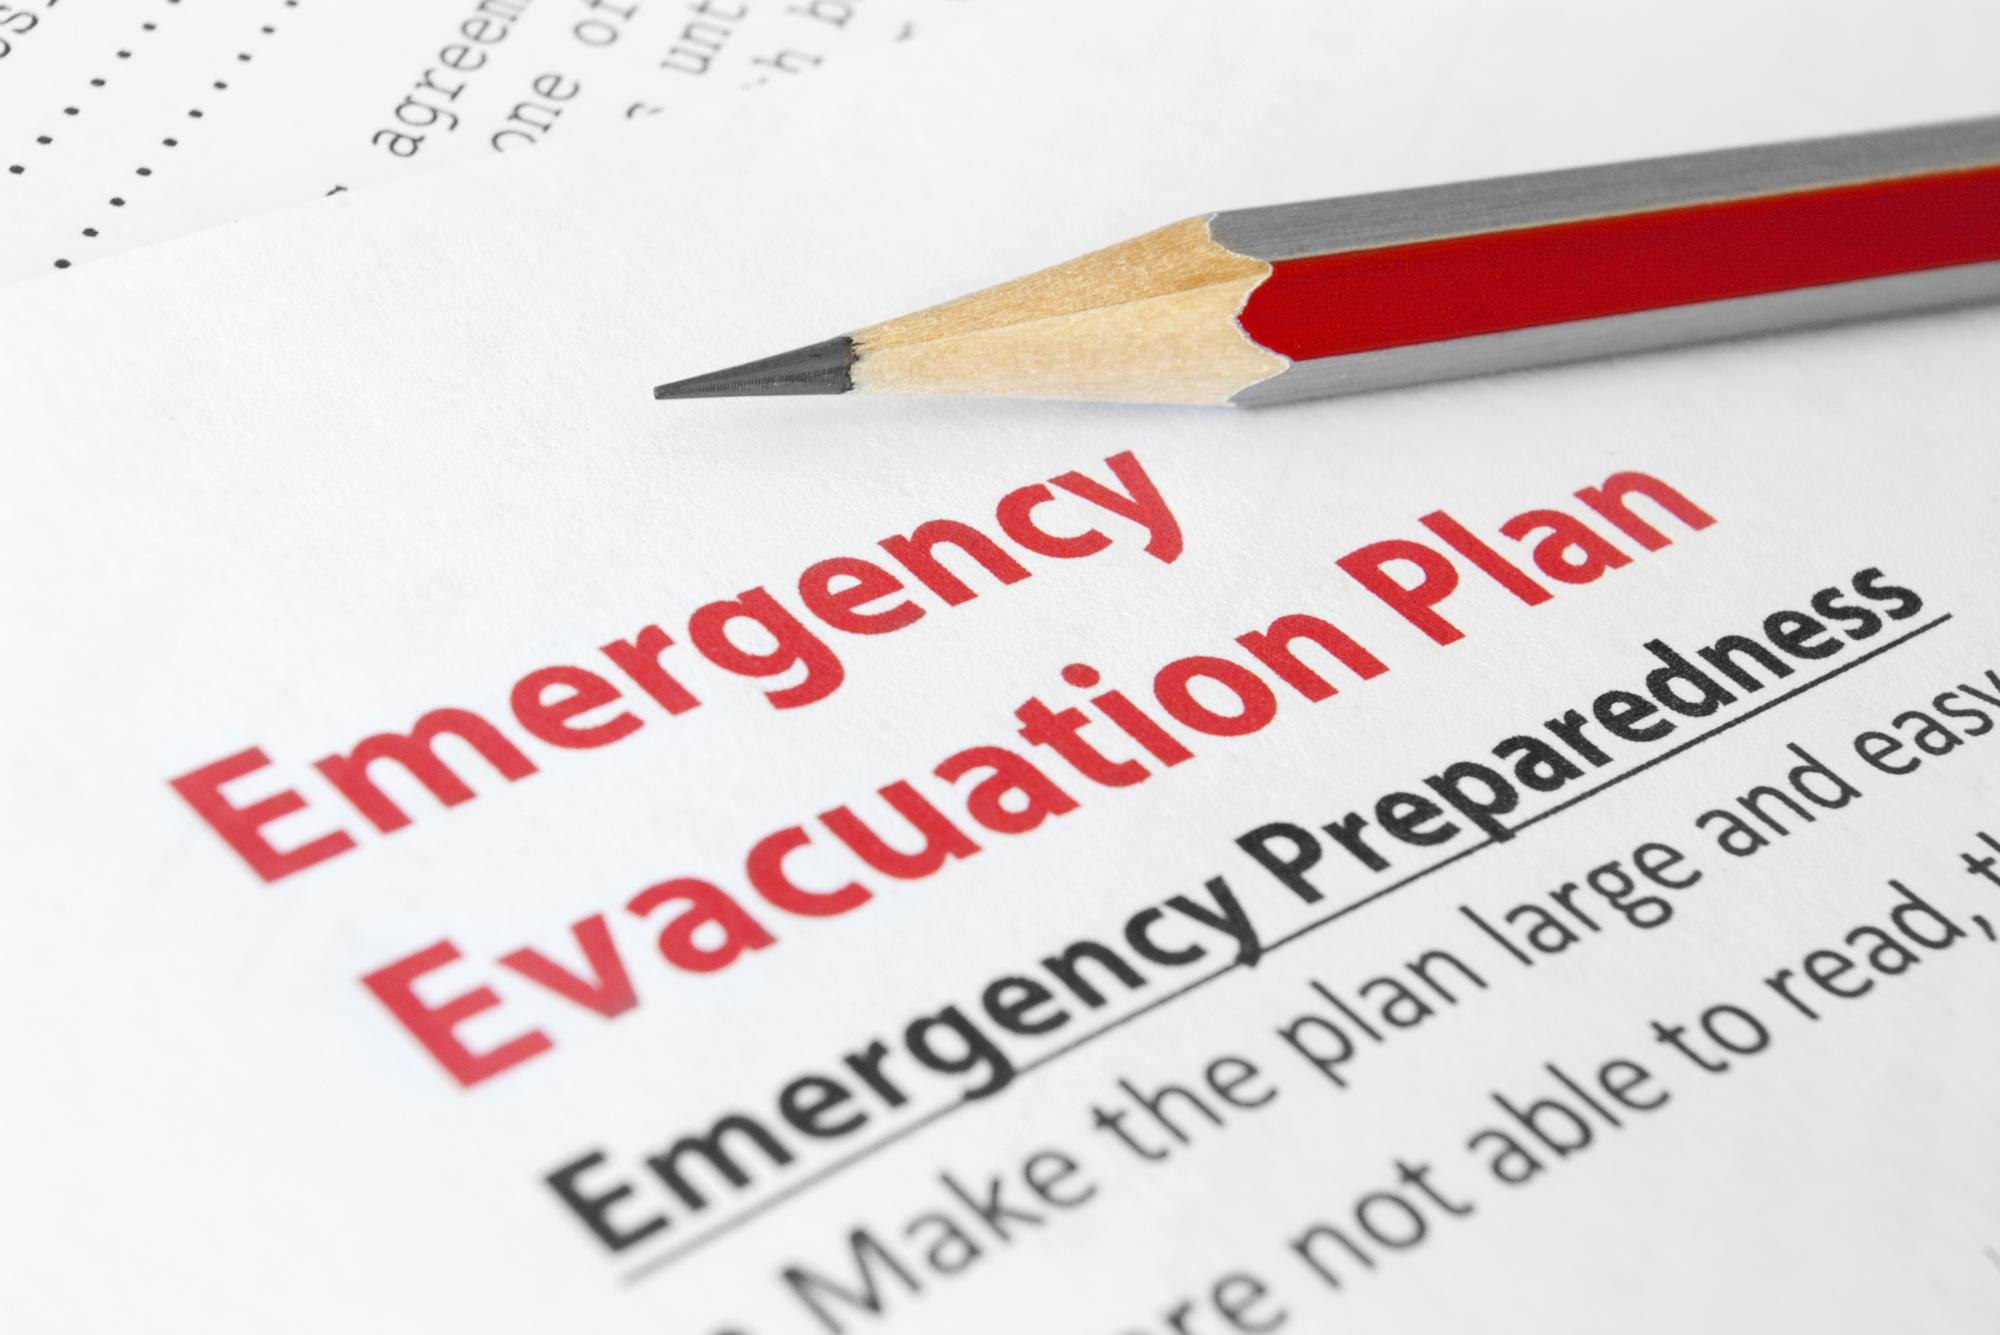 emergency preparedness and response plan template - evacuation planning 101 ways to survive